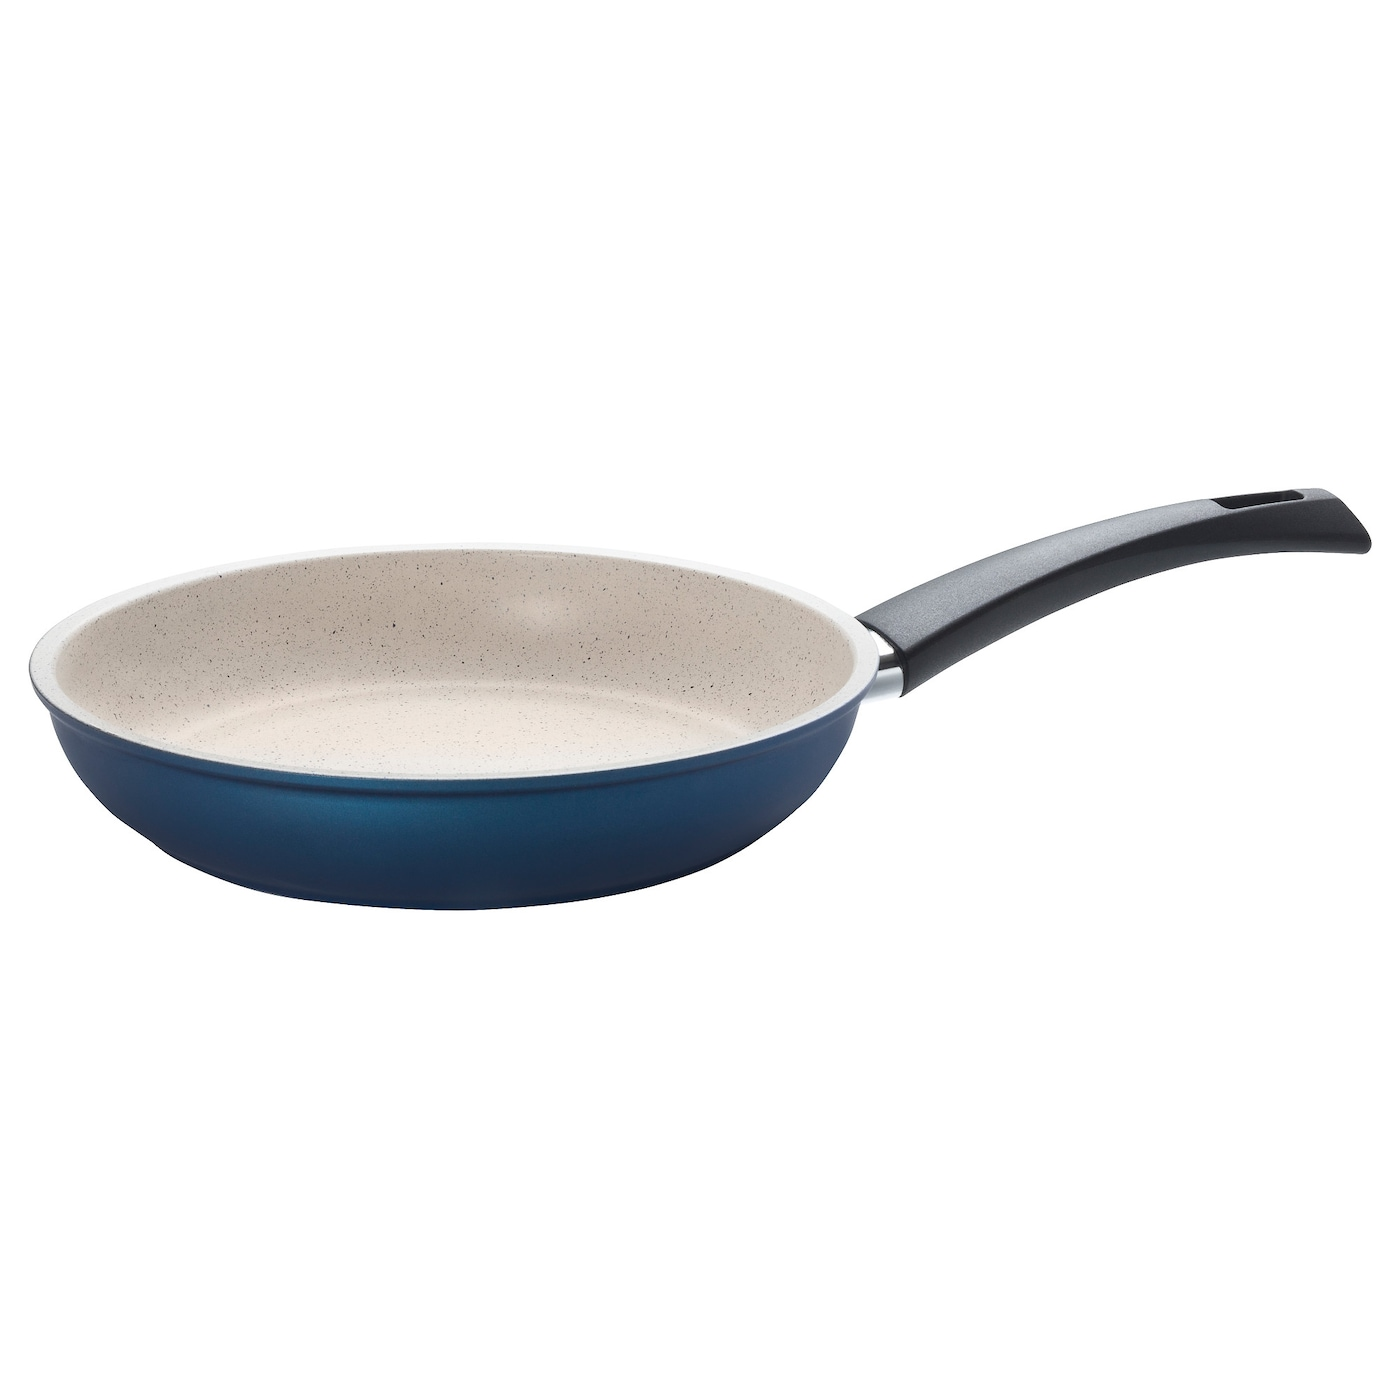 IKEA SMAKSÄTTA frying pan The pan has a rounded interior, which makes stirring and beating easy.